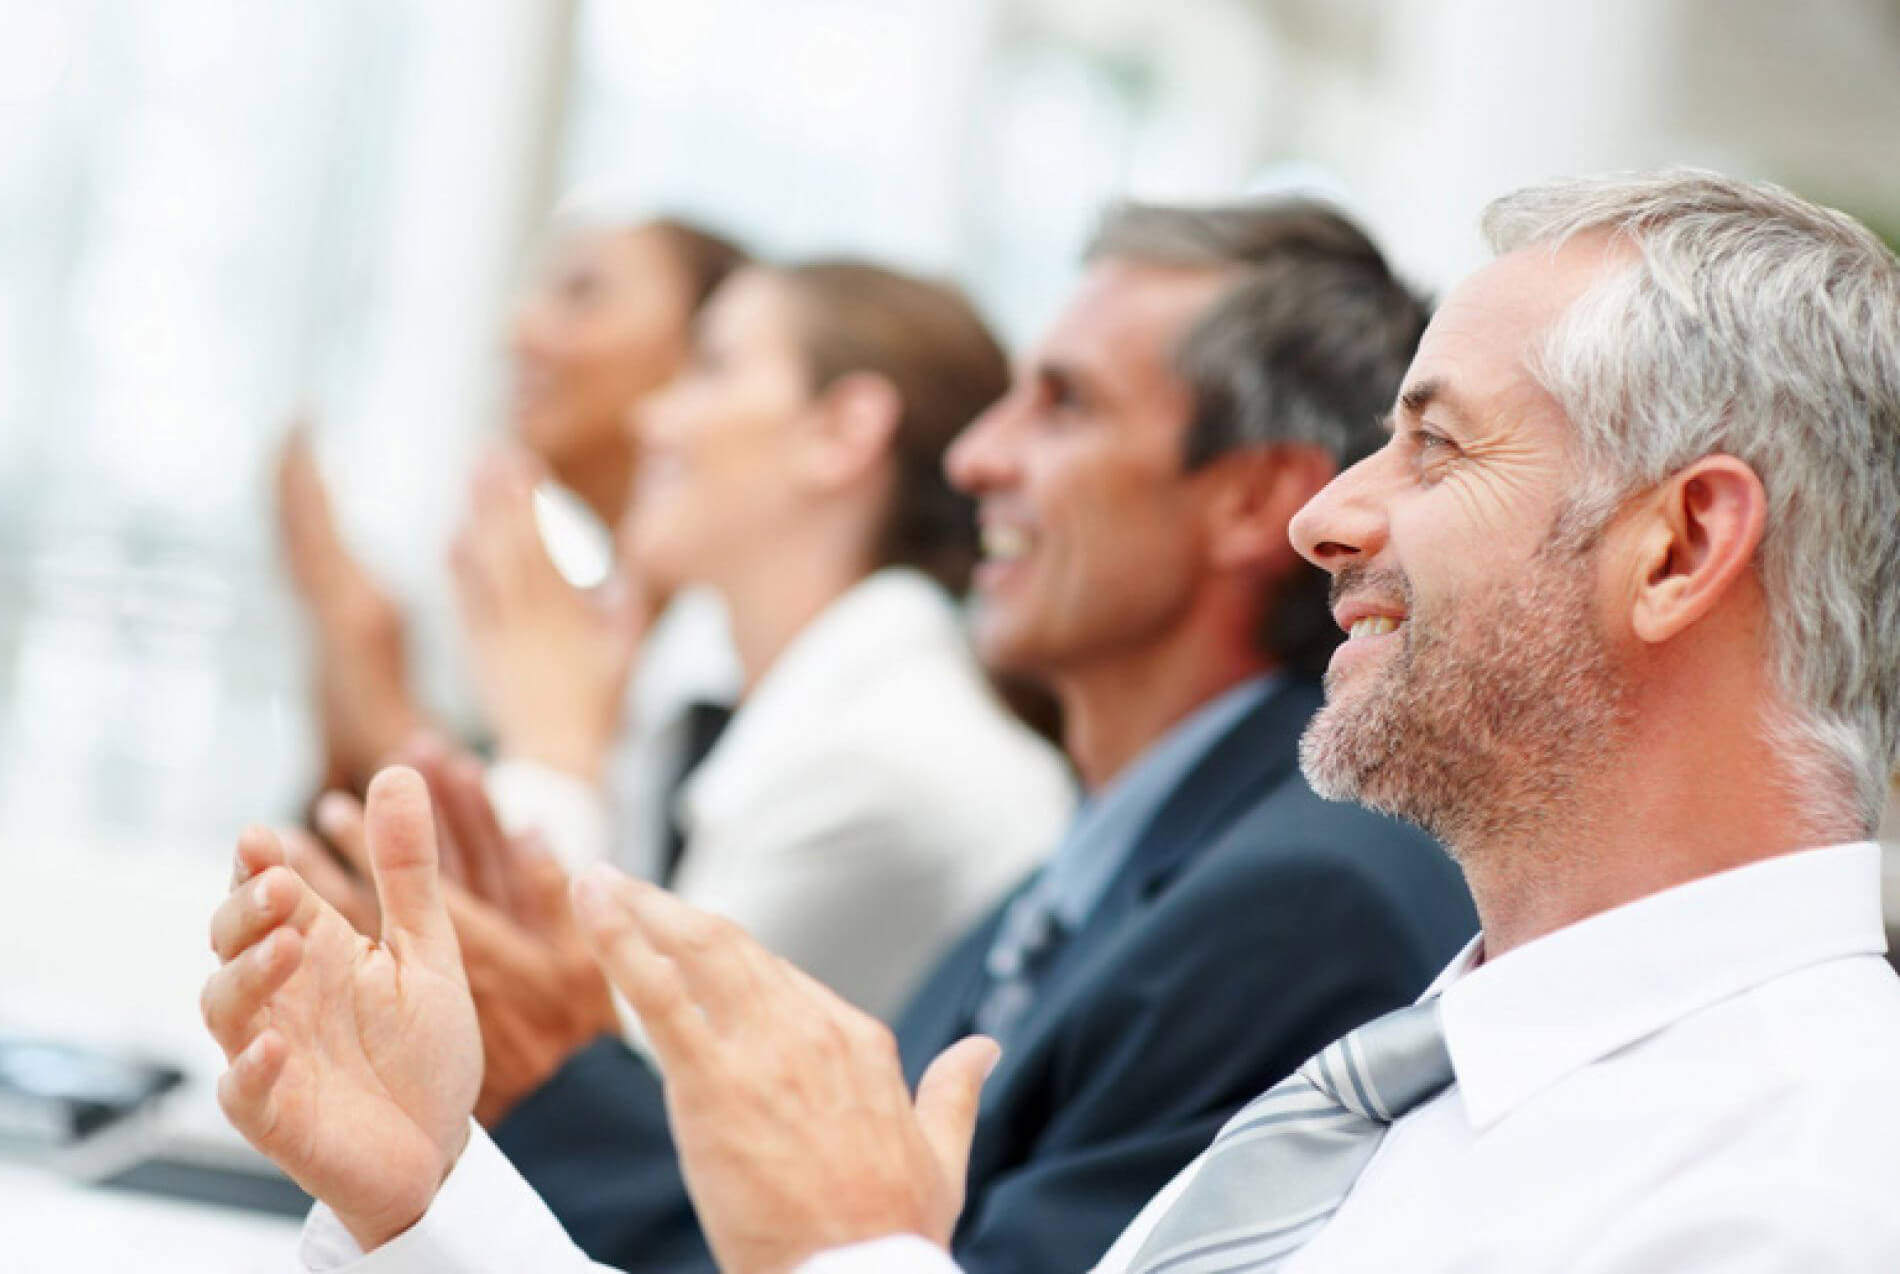 Close Up of Mature Businessman with Additional People Blurred in Background Clapping